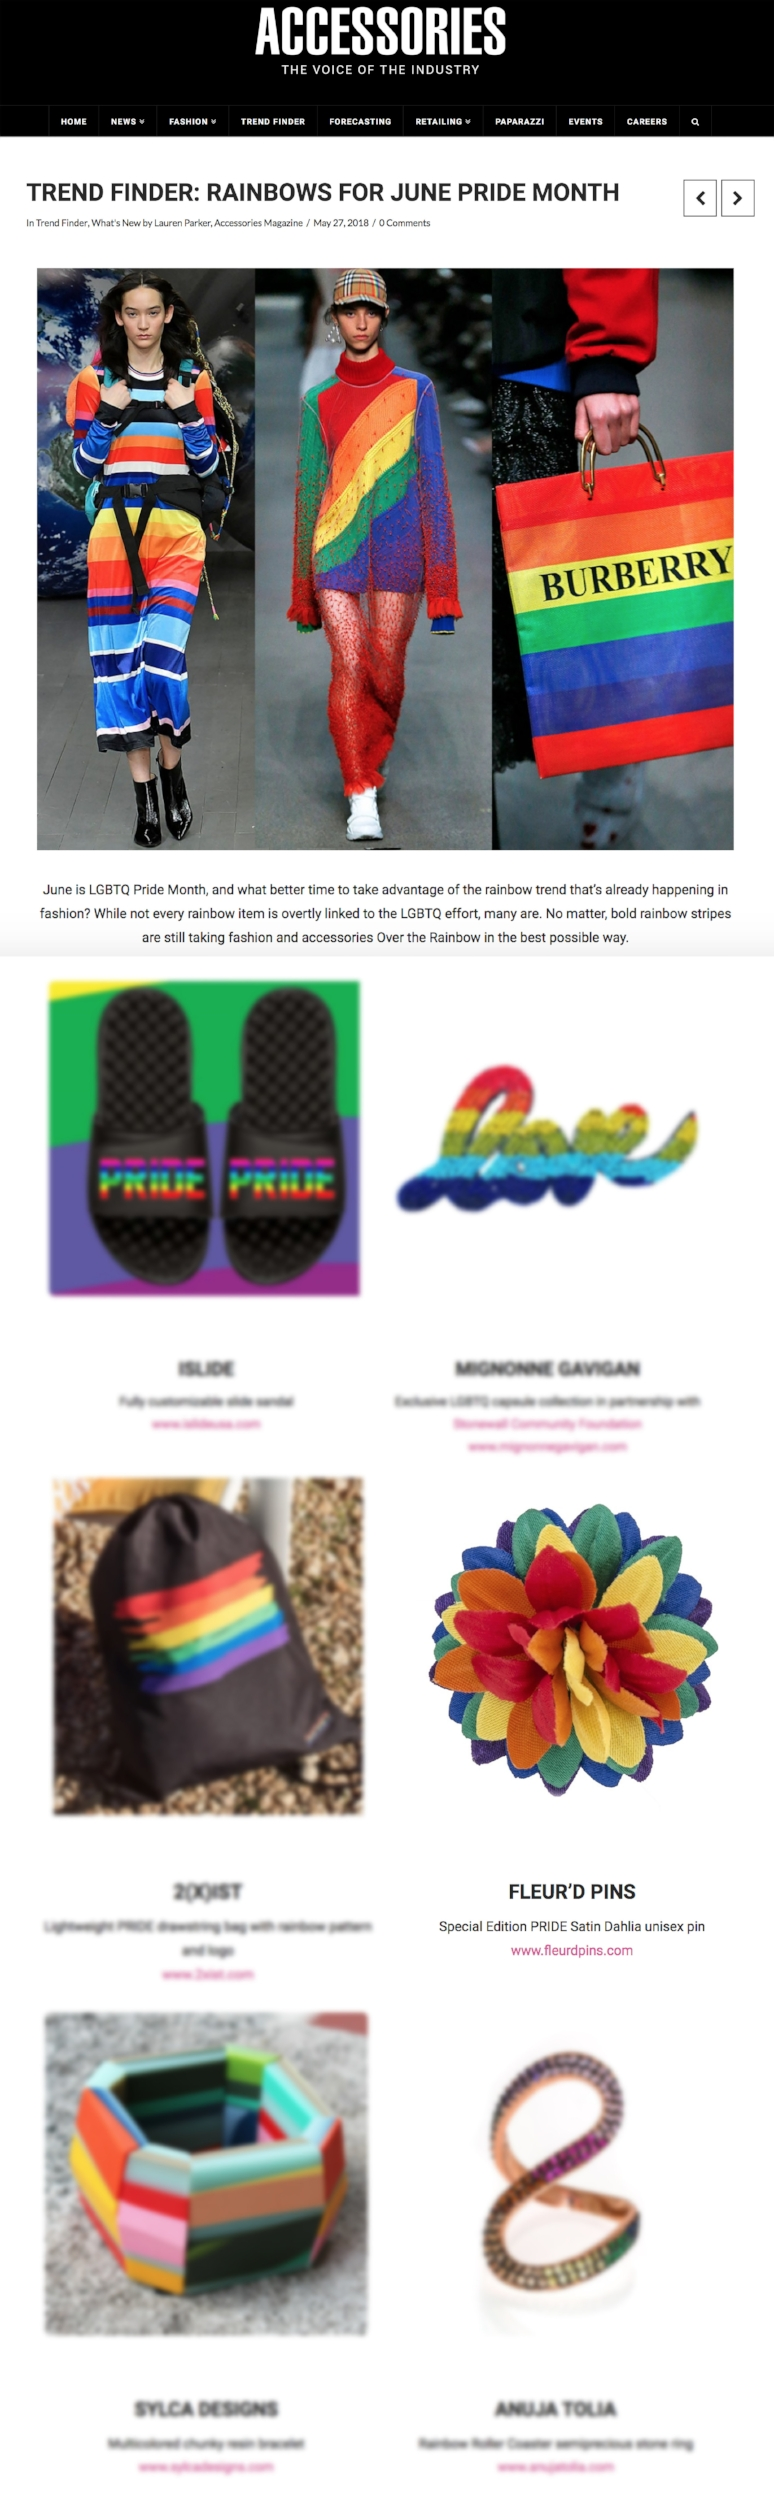 Accessories Magazine PRIDE write up - Fleur'd Pins Rainbow Fleur.jpg